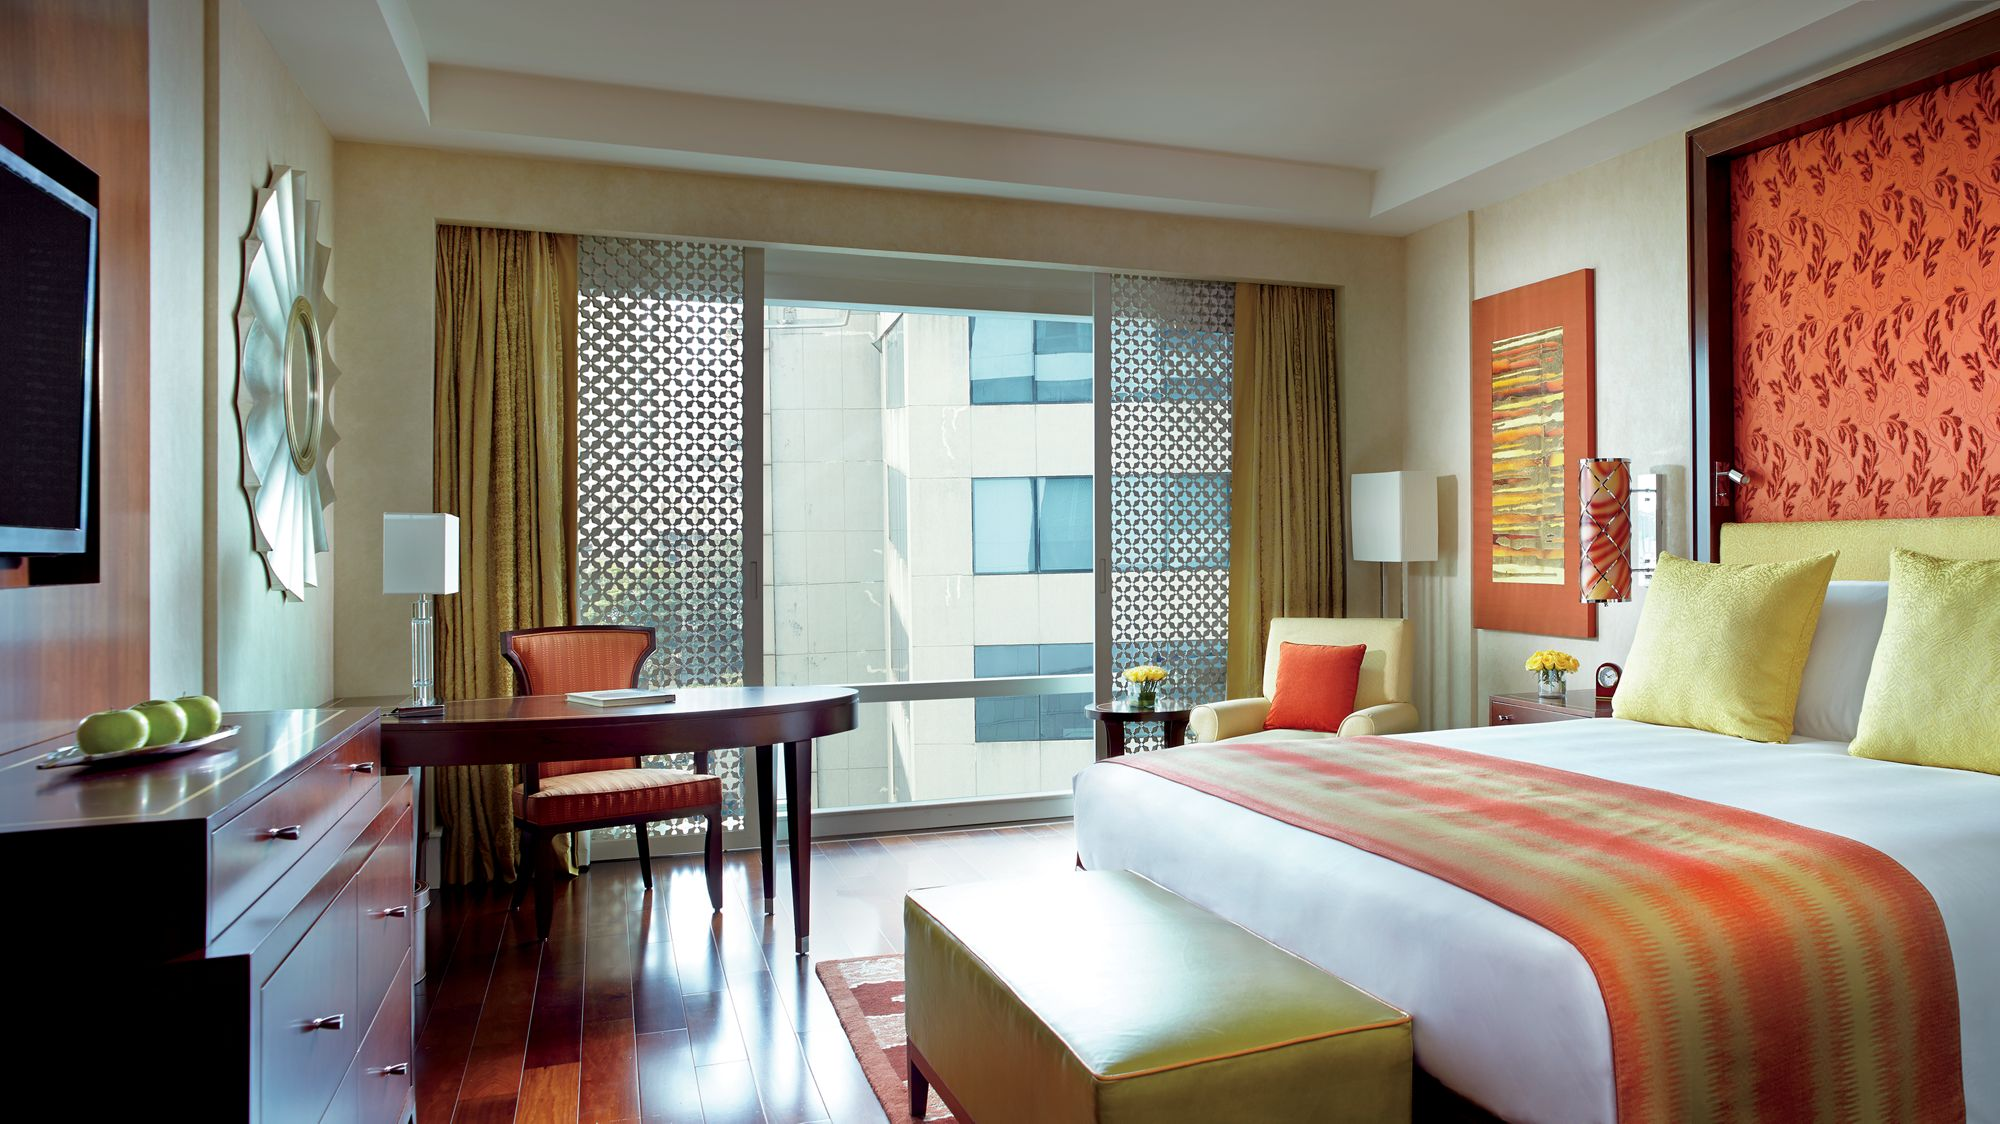 Guest room with floor-to-ceiling windows and city views, accents in red and yellow, a king-size bed and rich woods